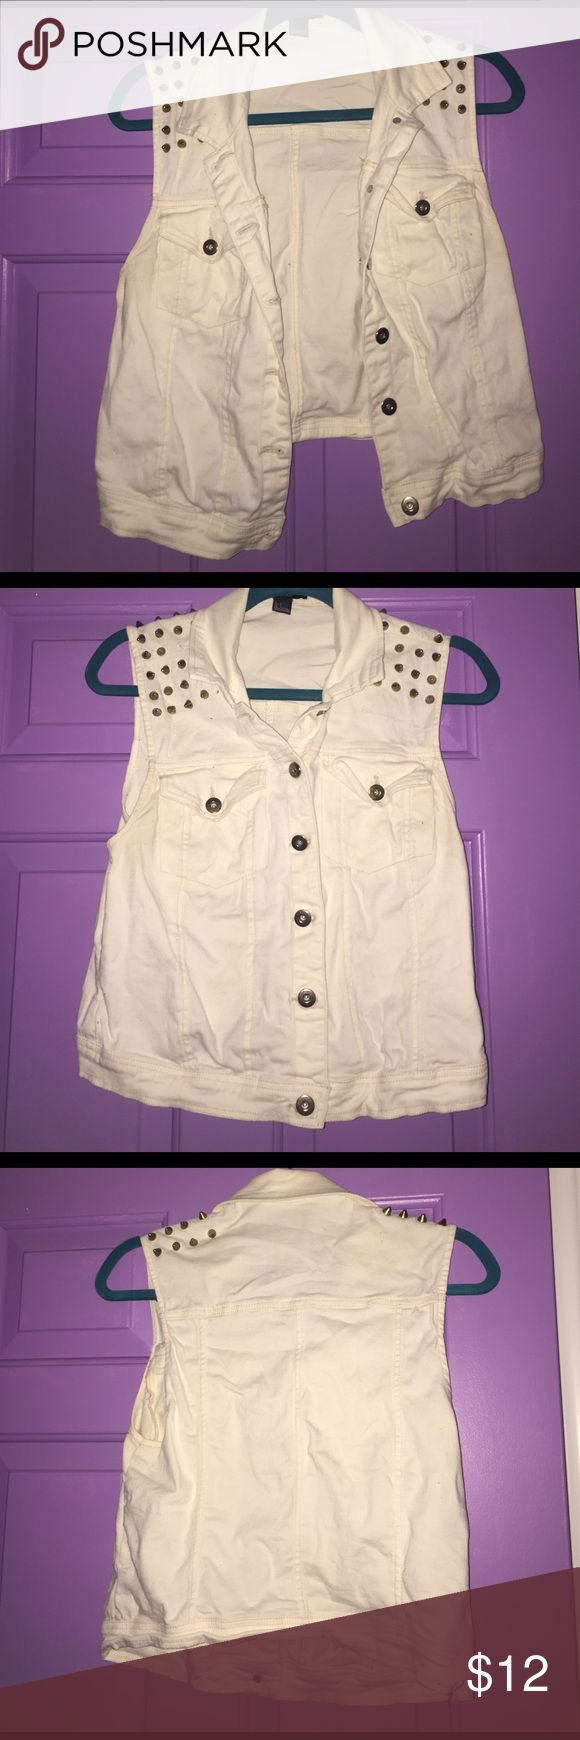 Studded white jean vest This vest has been wore two times at most! It is pure white with gold spike embellishments! A couple of spikes are missing but you can't notice them! It took me 5 minutes of examination to actually see that they are missing. Forever 21 Jackets & Coats Vests